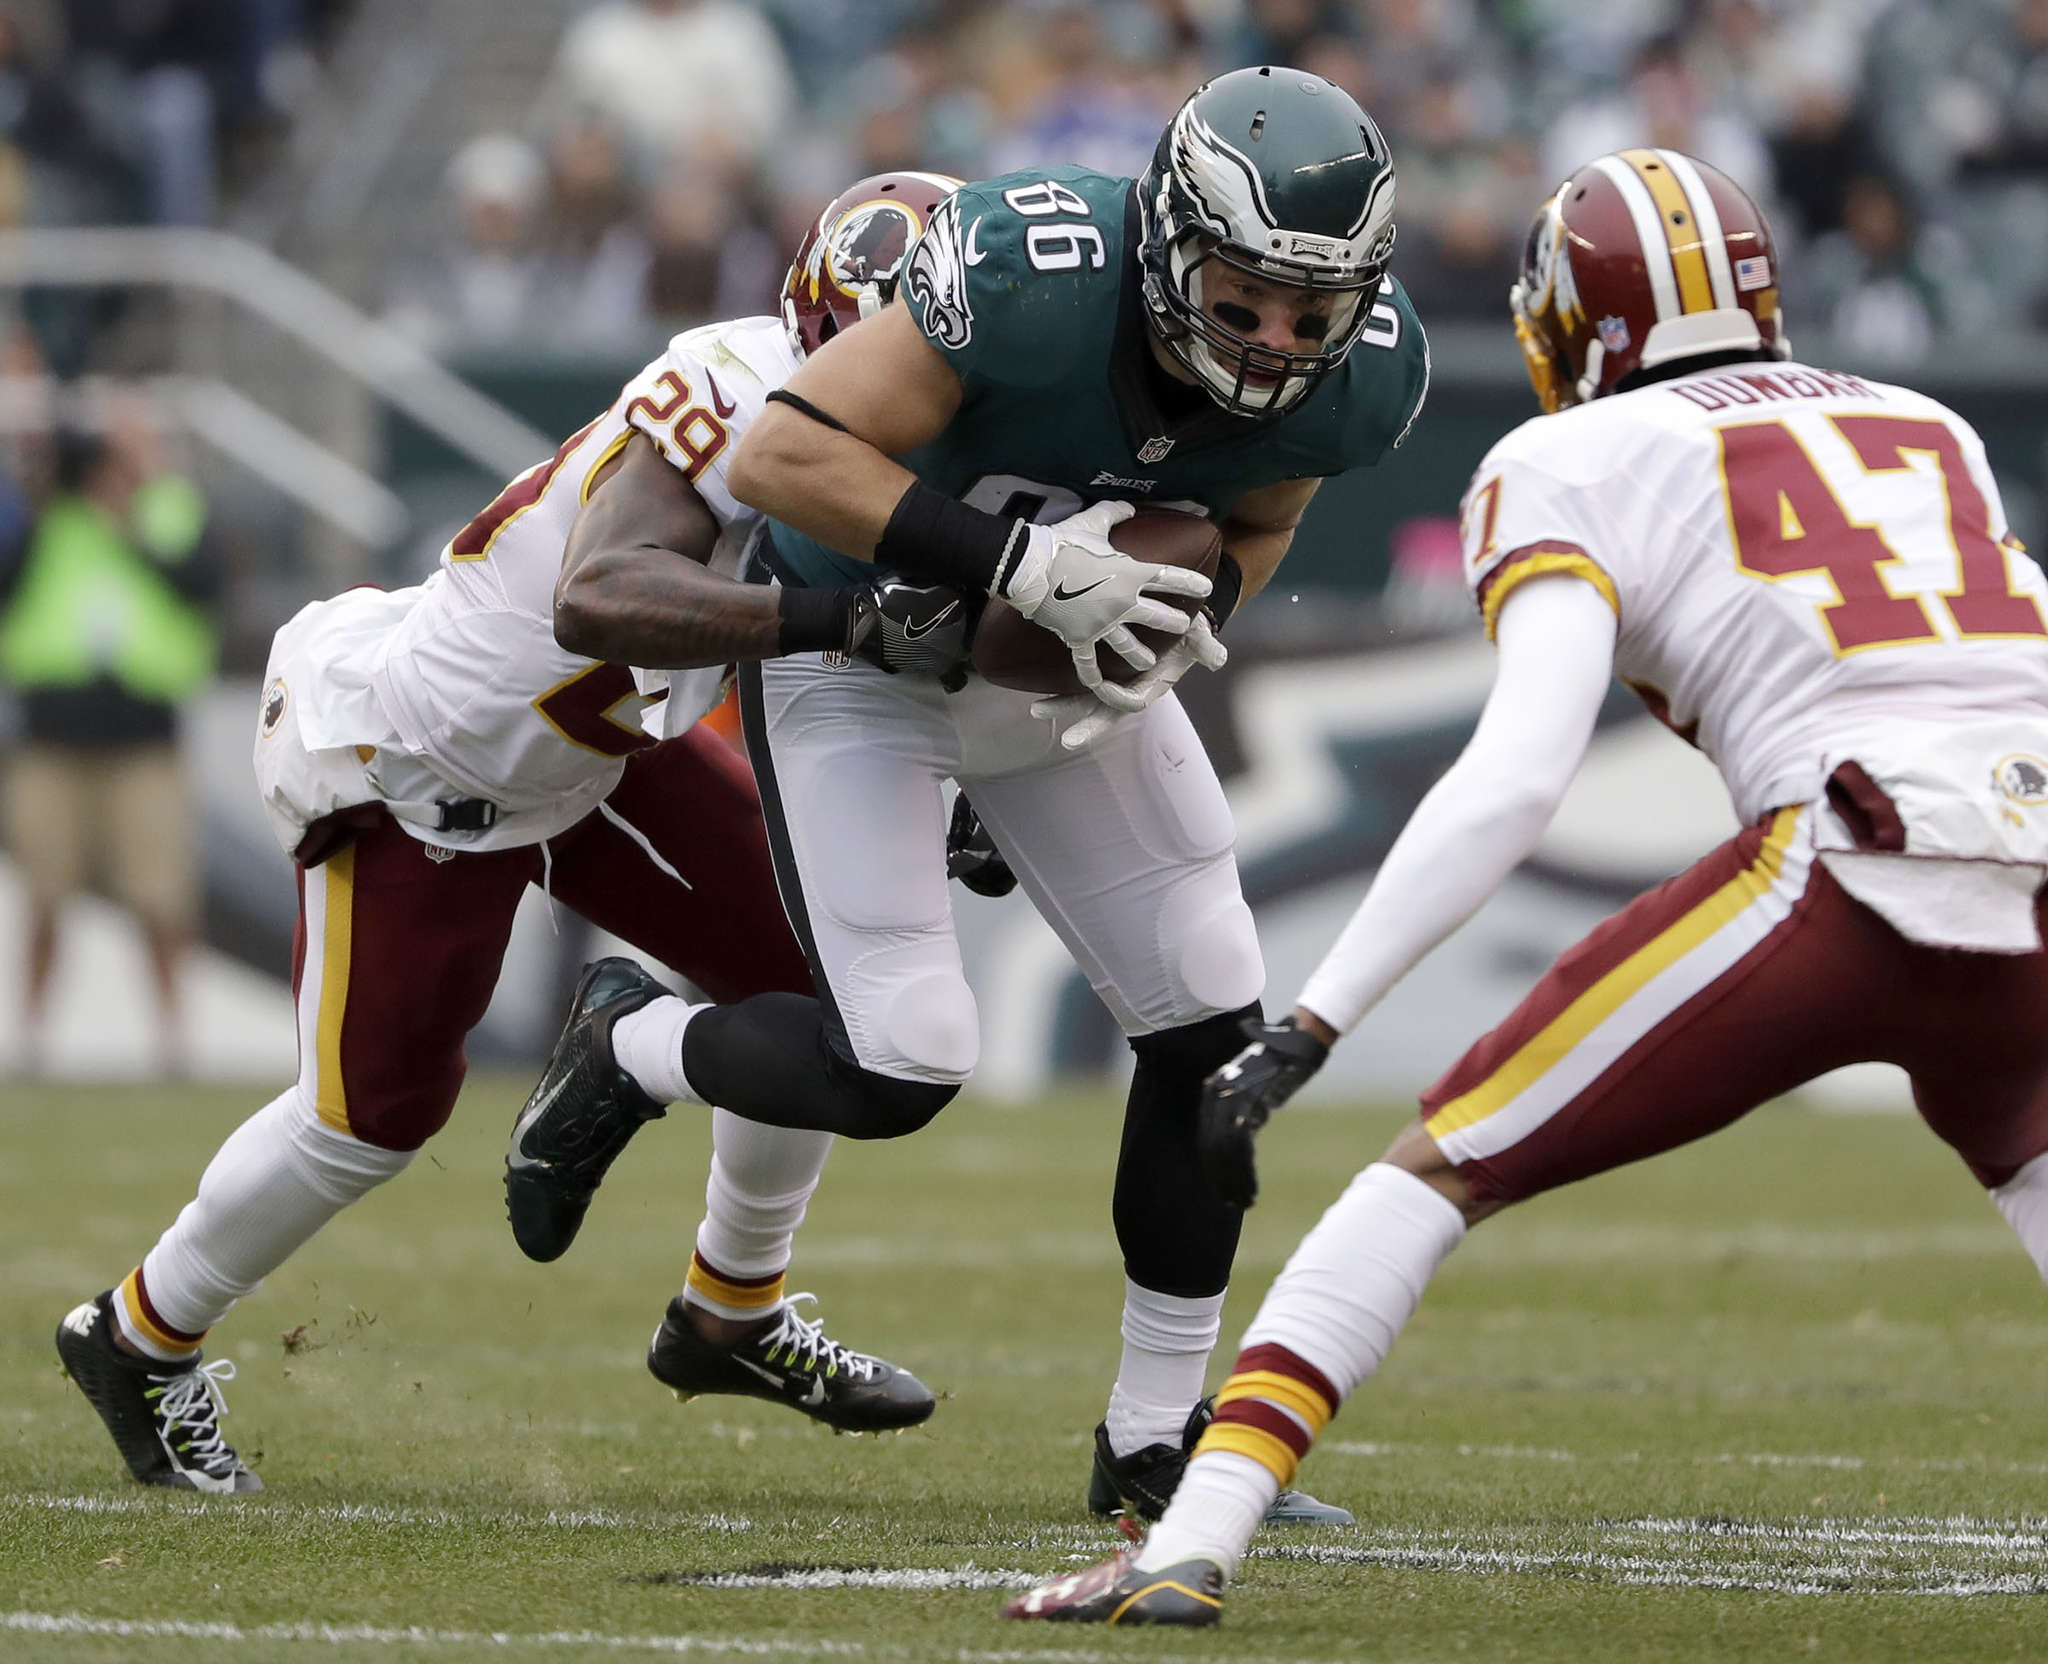 Zach Ertz tries to get away from Redskins´ Duke Ihenacho (left) and Quinton Dunbar in first quarter.